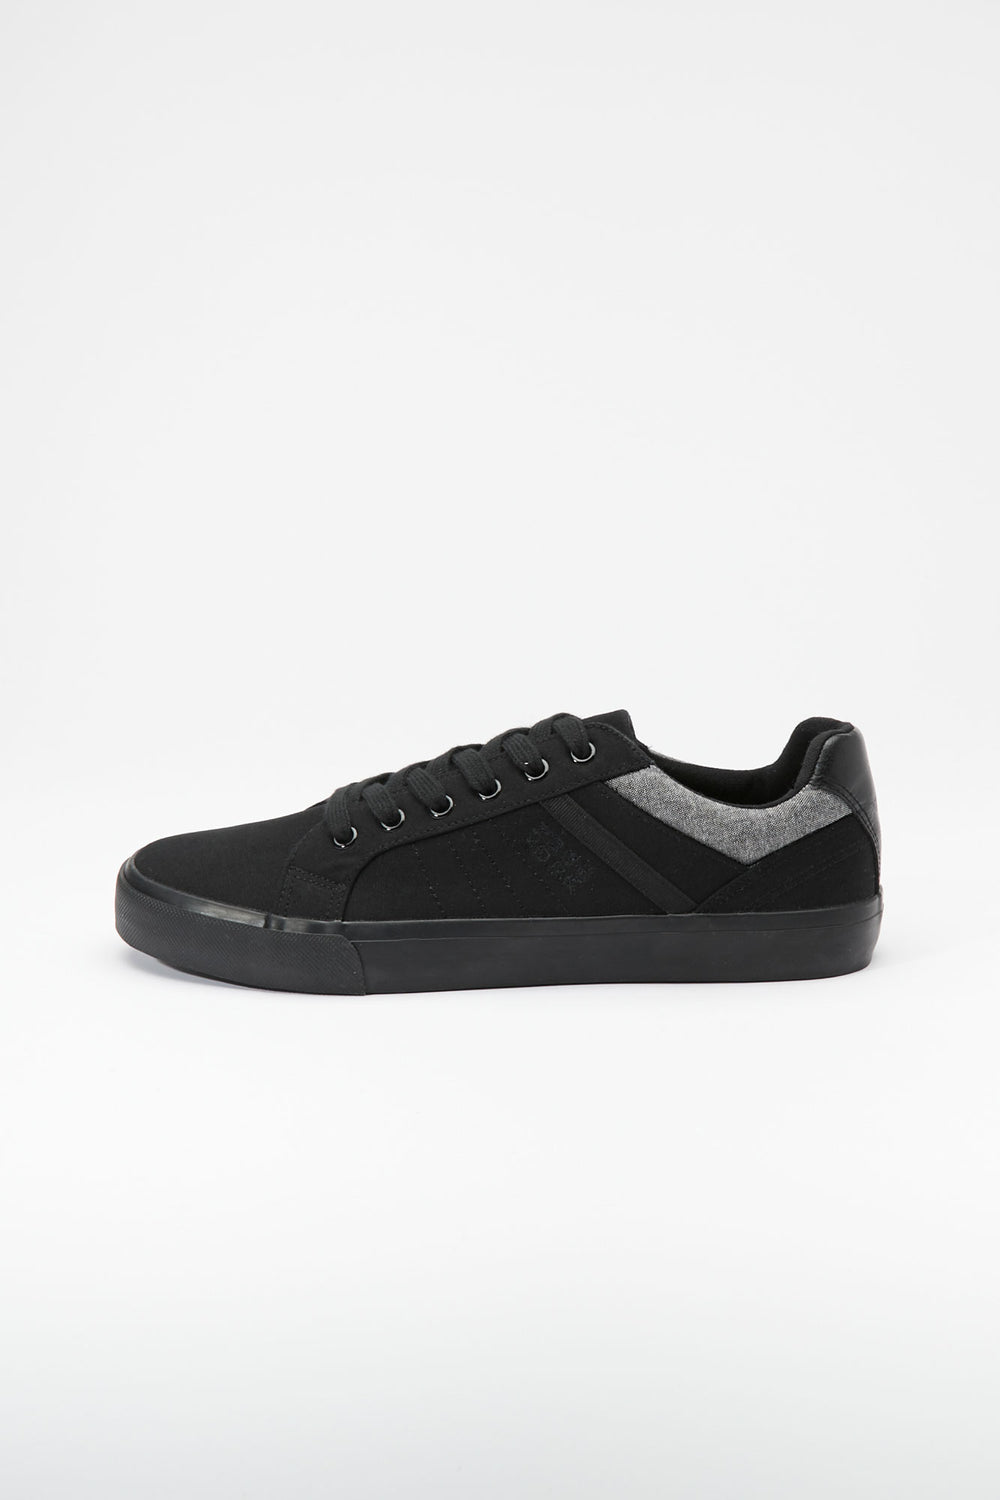 Zoo York Mens Black Leon Shoes Black with White